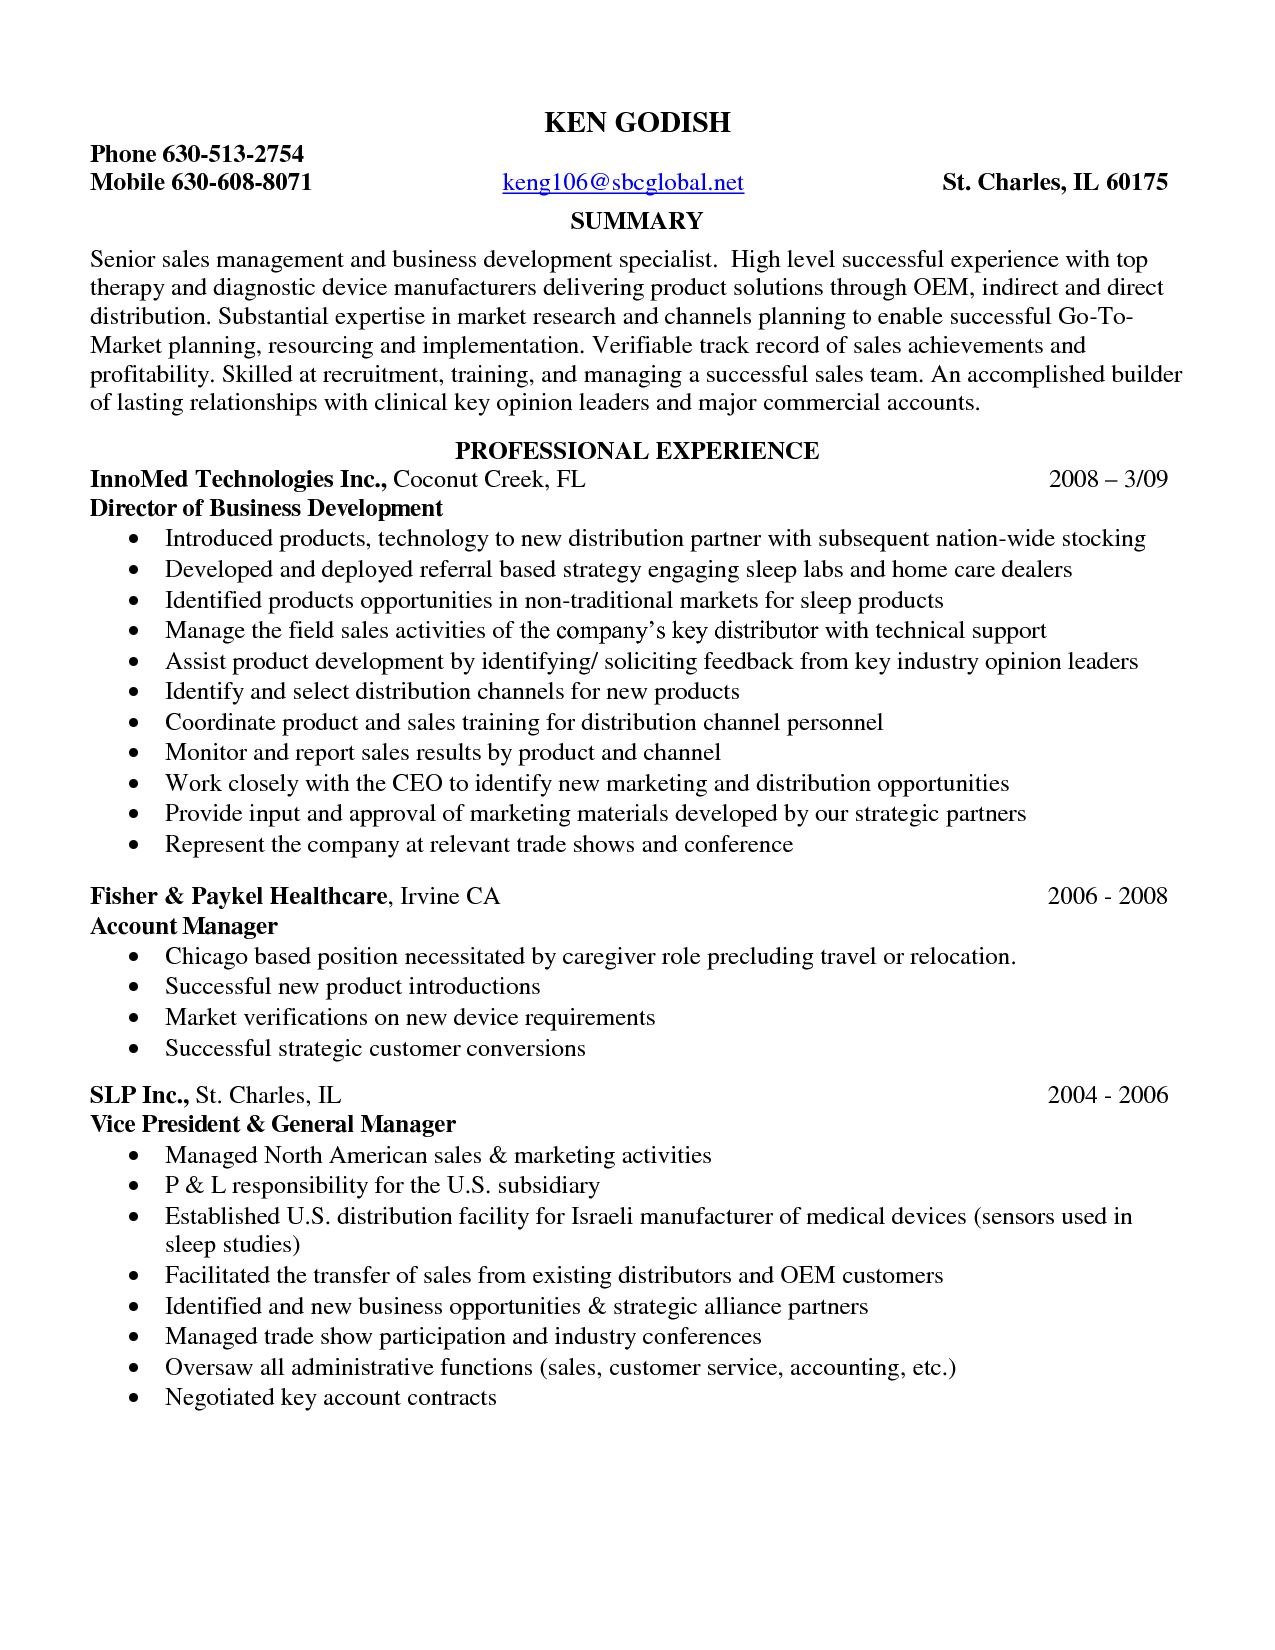 Sample Resume Entry Level Pharmaceutical Sales Sample Resume Entry Levelu2026  Pharmaceutical Sales Resume Sample